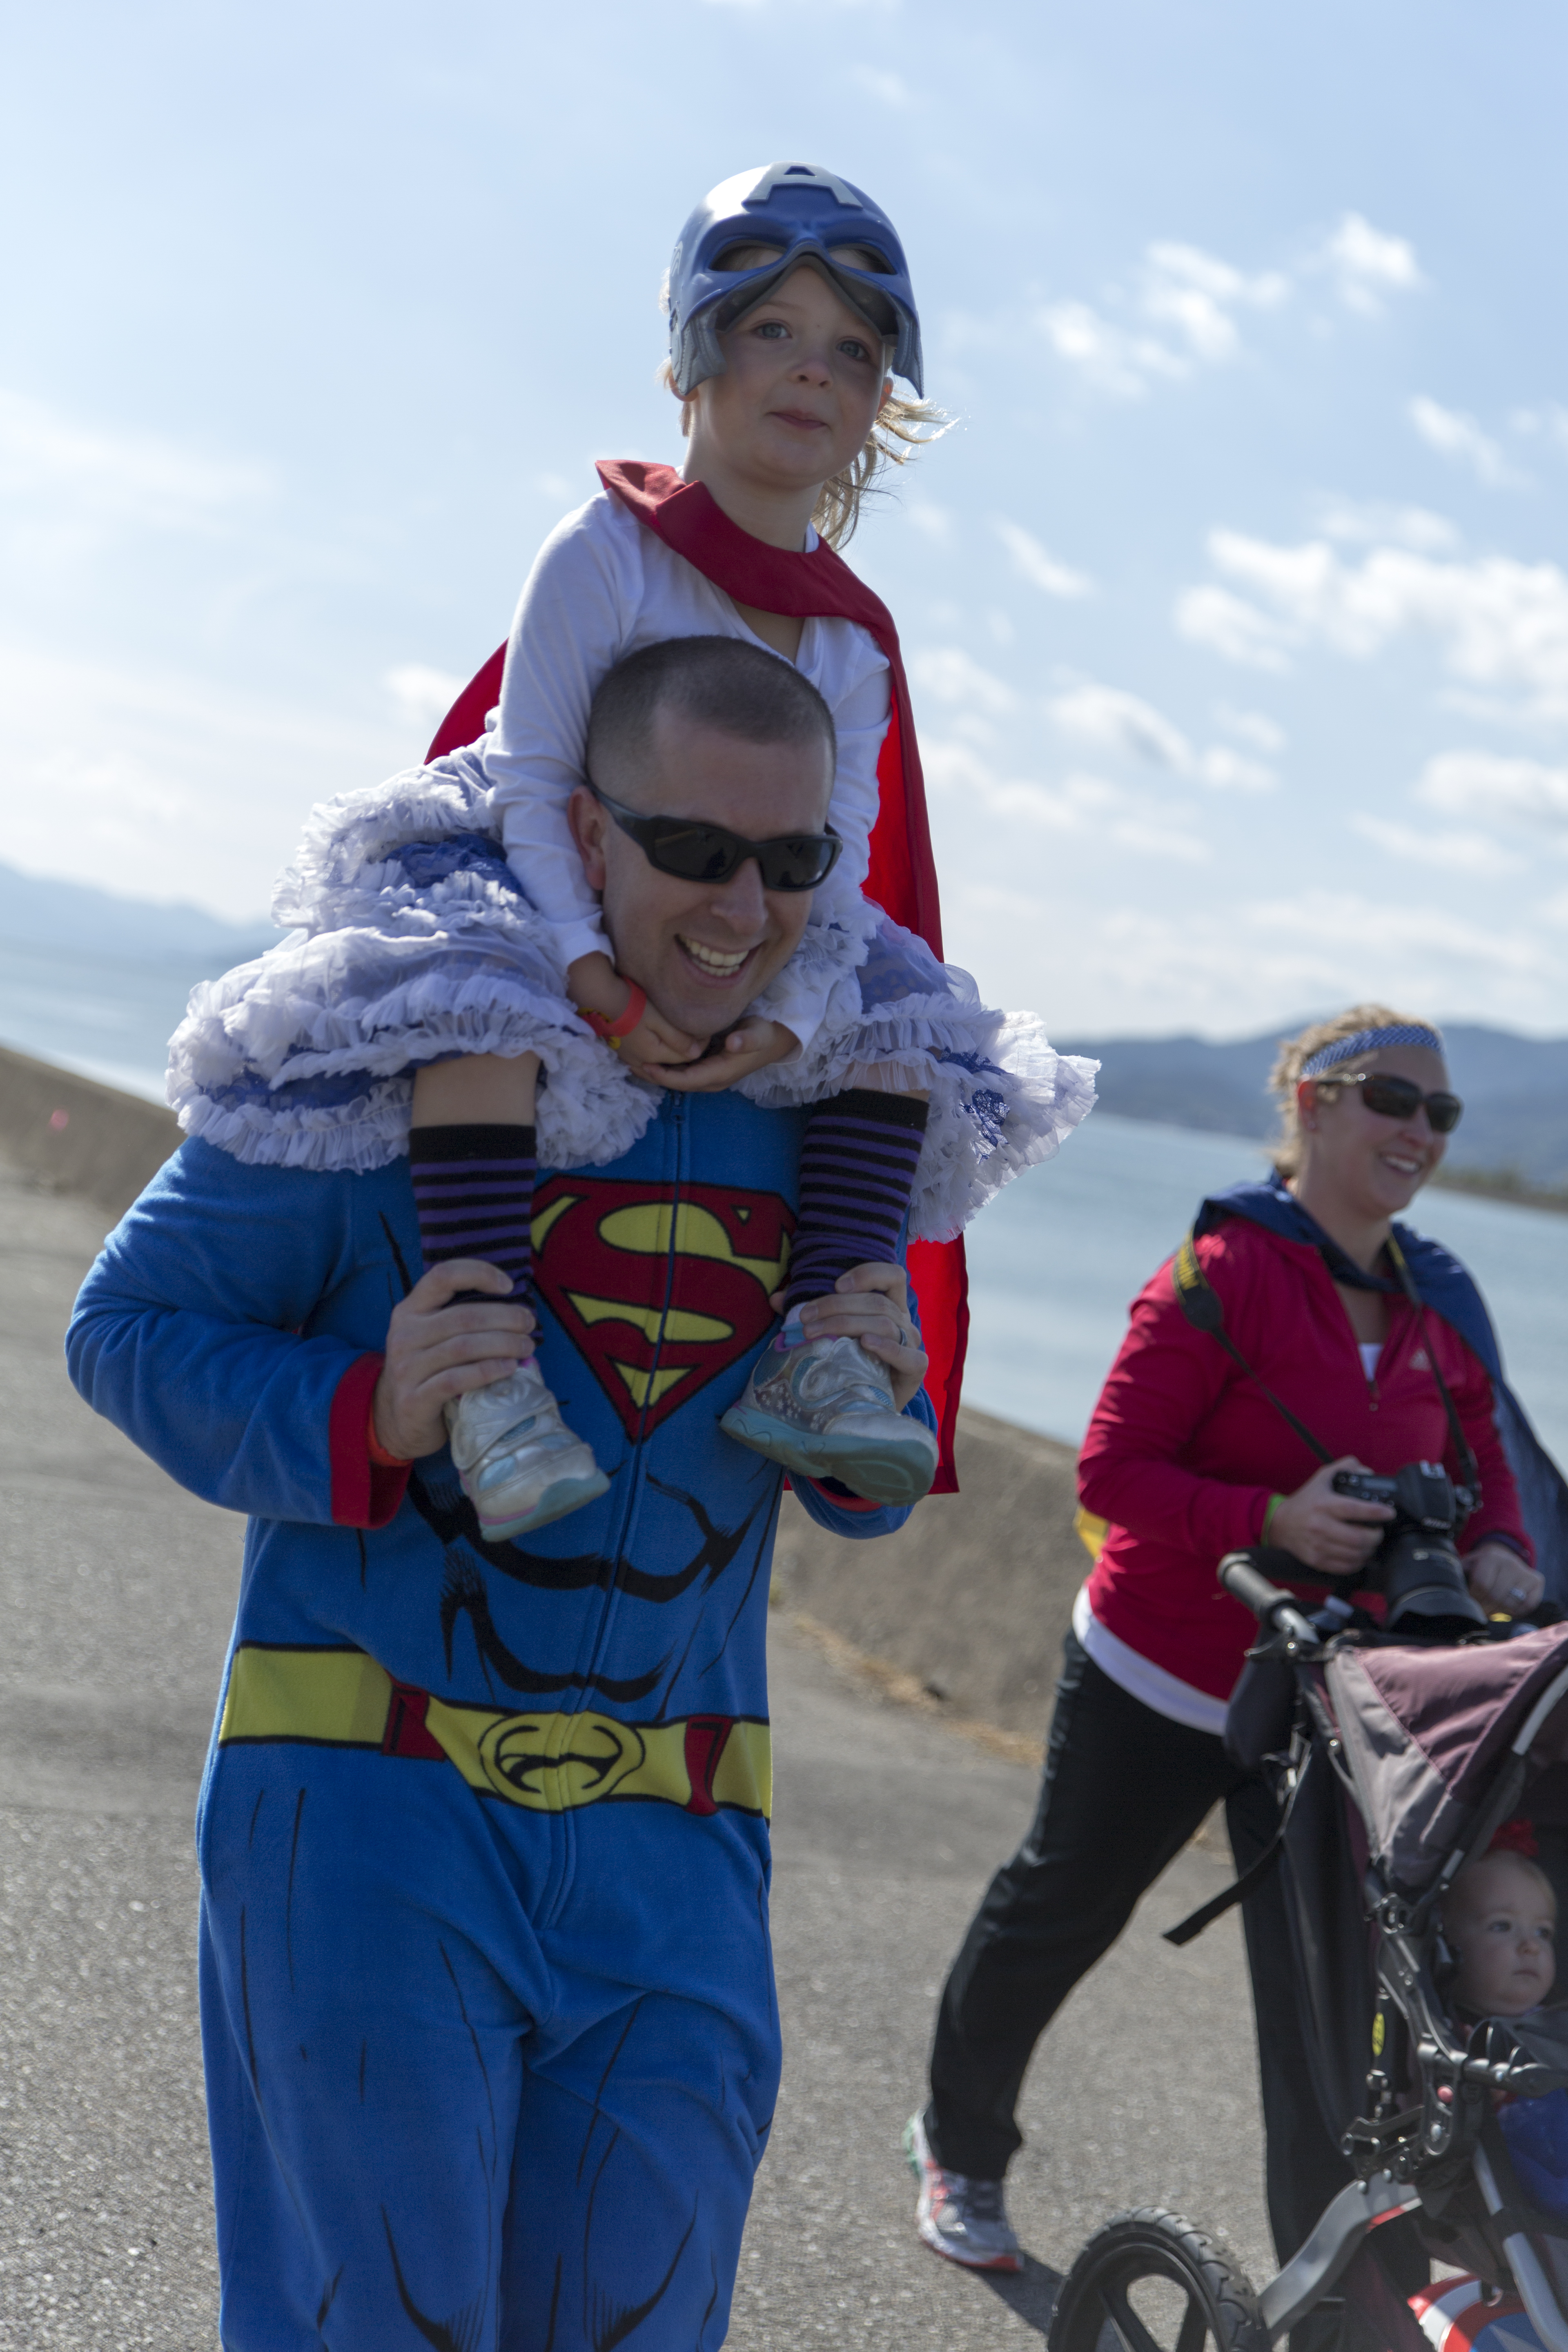 MCAS residents race during Superhero Fun Run 151031-M-EP064-059.jpg English: A family races to the finish line during a Superhero Fun Run on the Seawall at